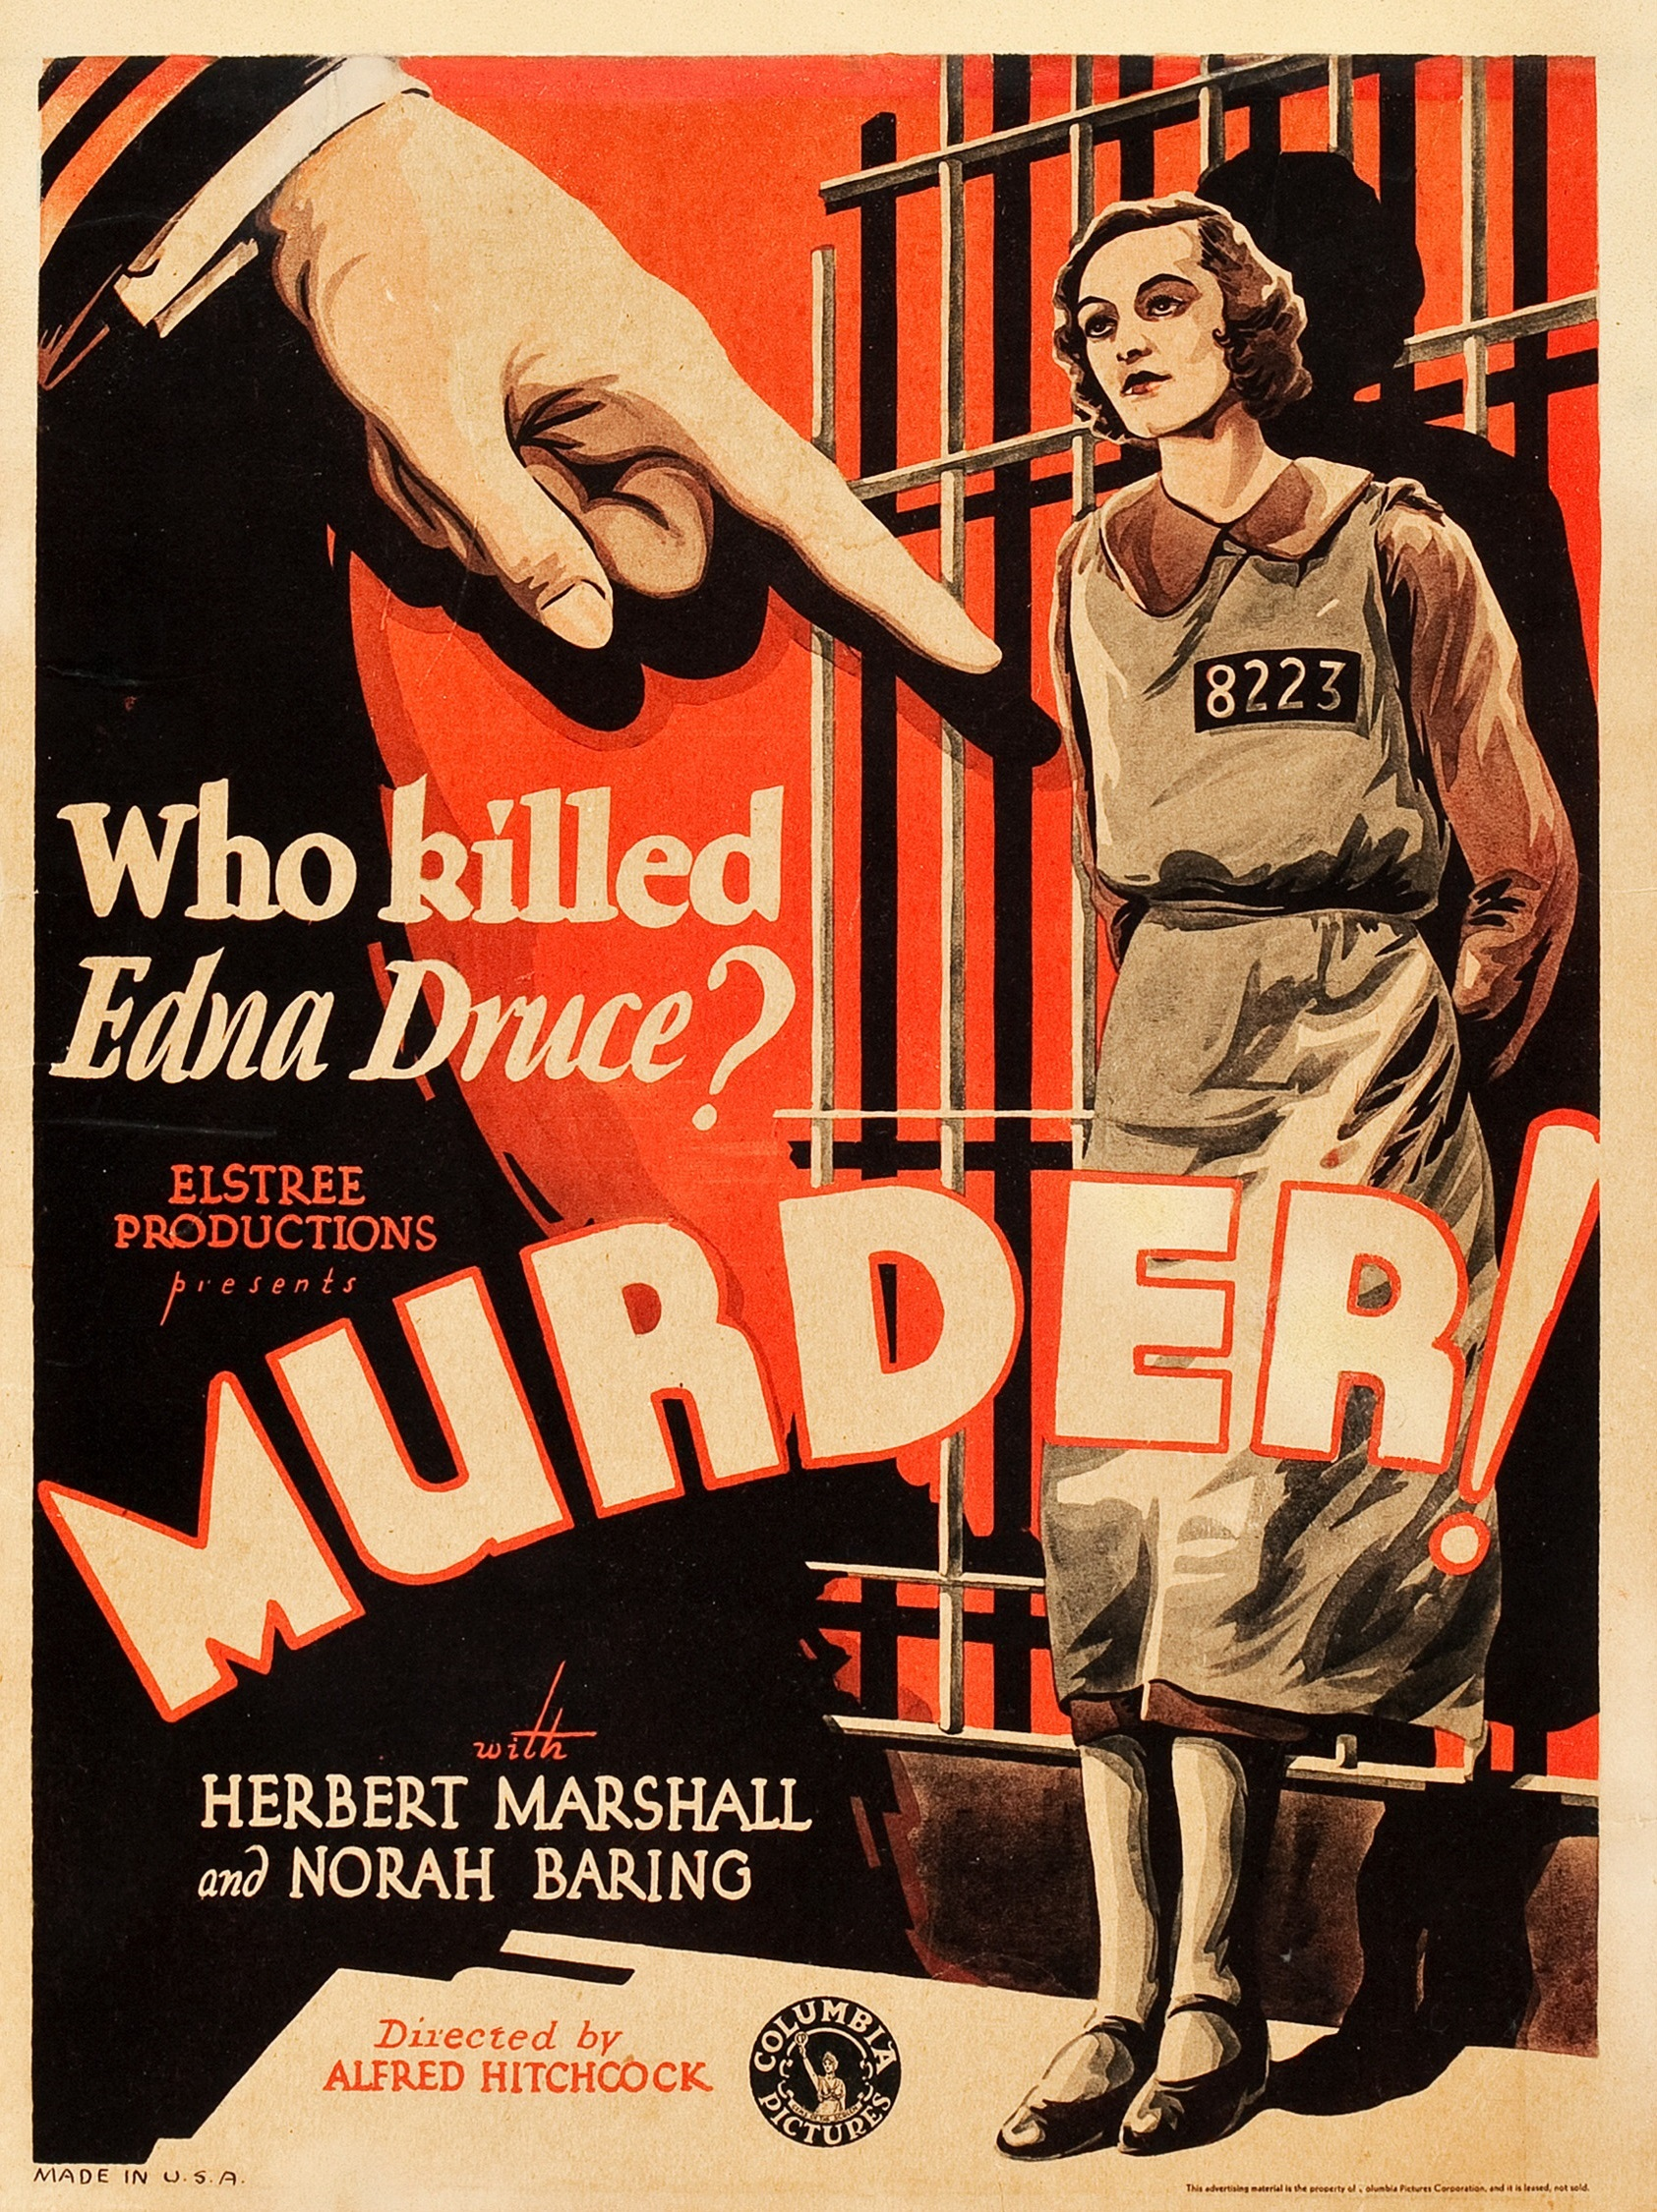 Murder! (1930, dir. Alfred Hitchcock) US window card